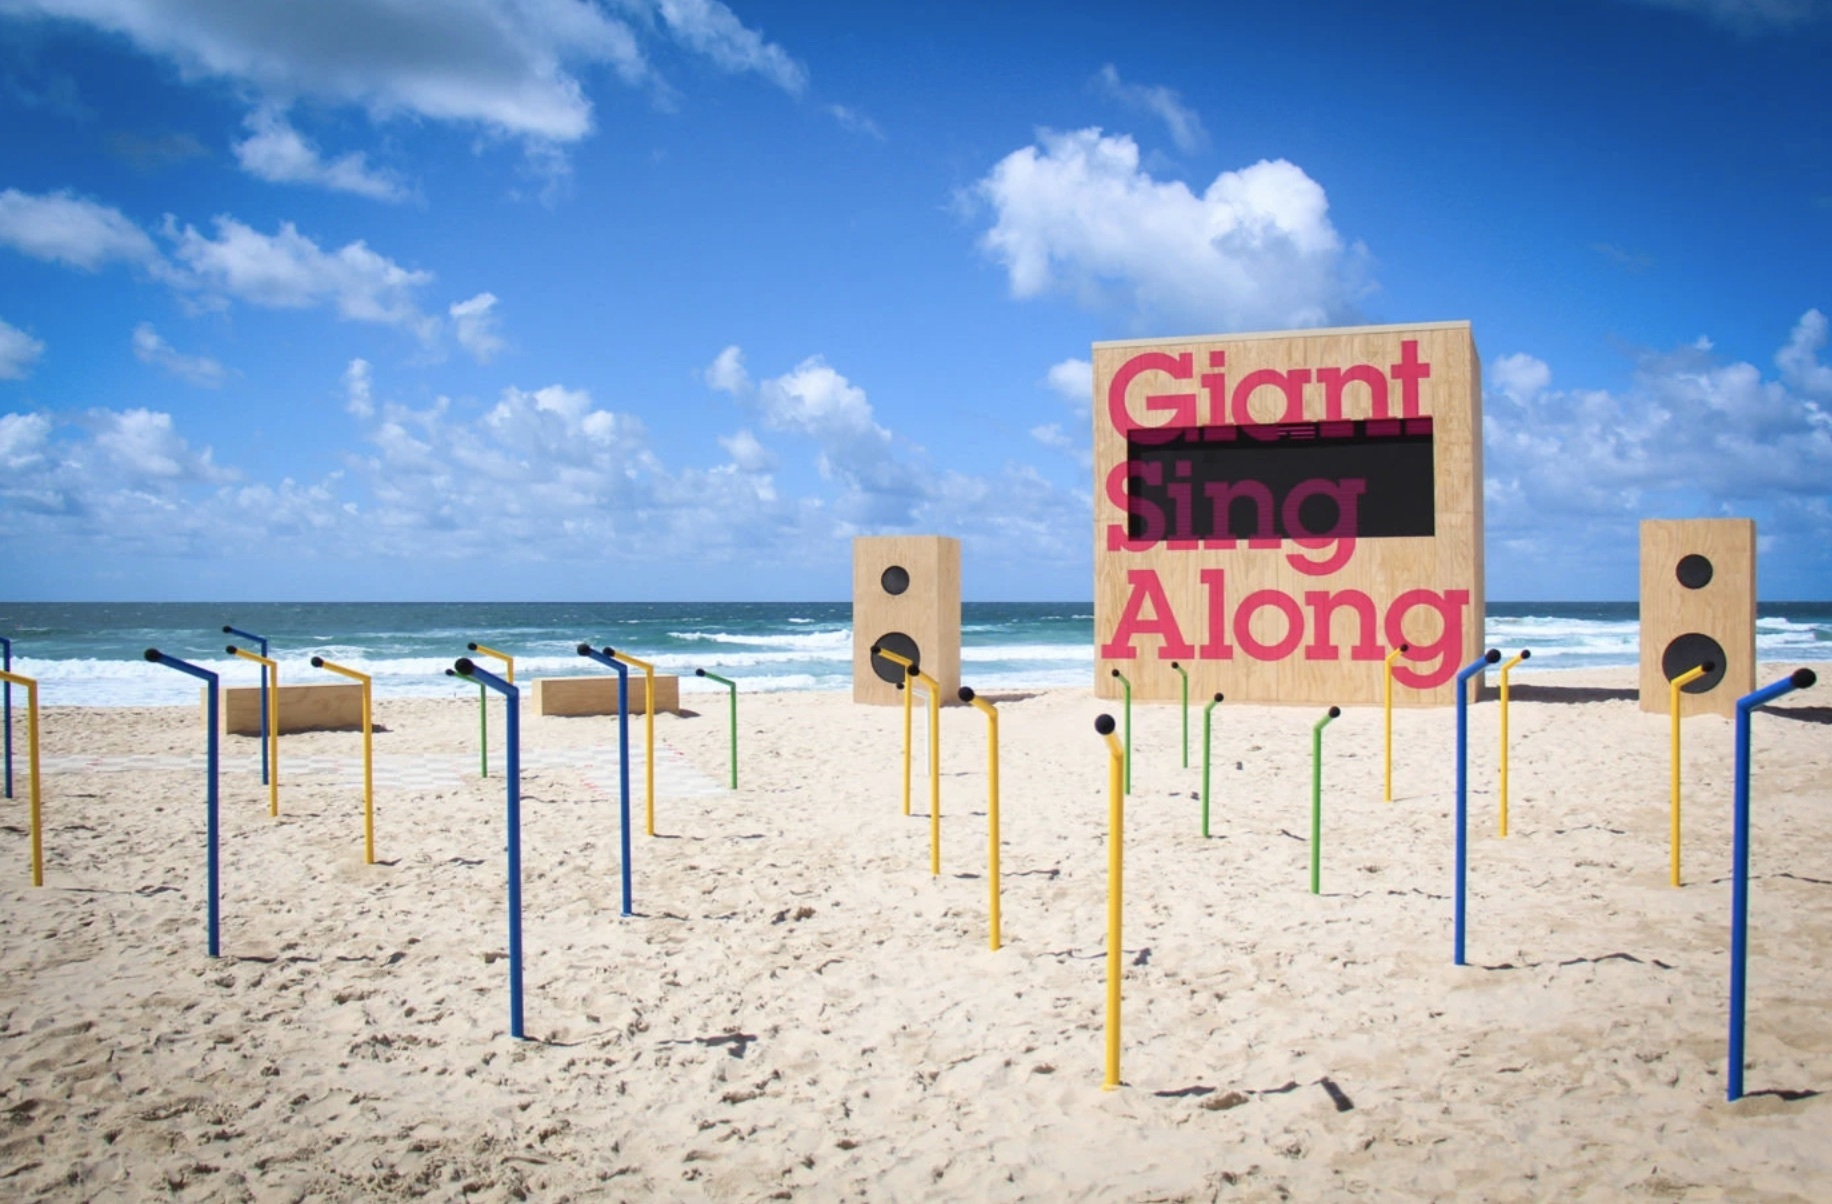 Giant Sing Along - Daily Tous les Jours